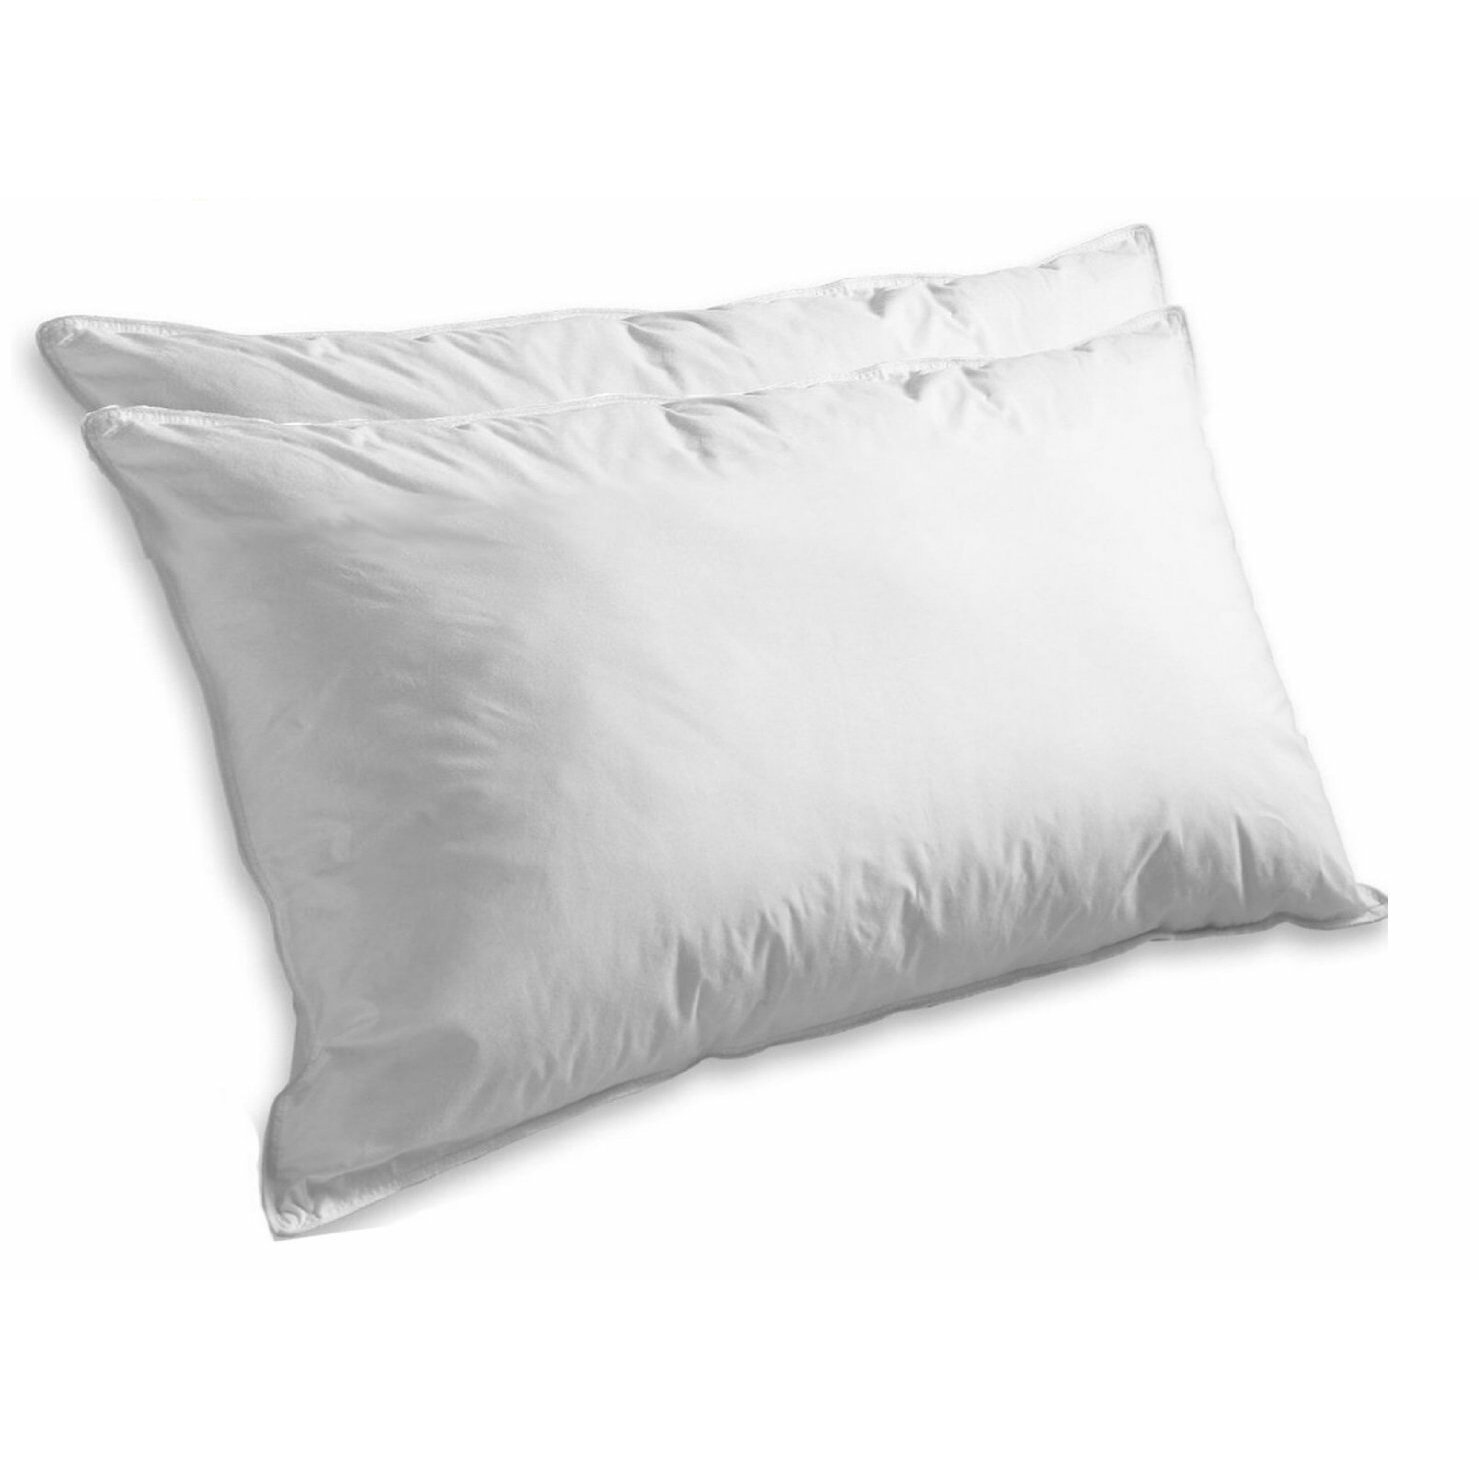 Elegant comfort super soft luxurious feather goose down for Best soft down pillow